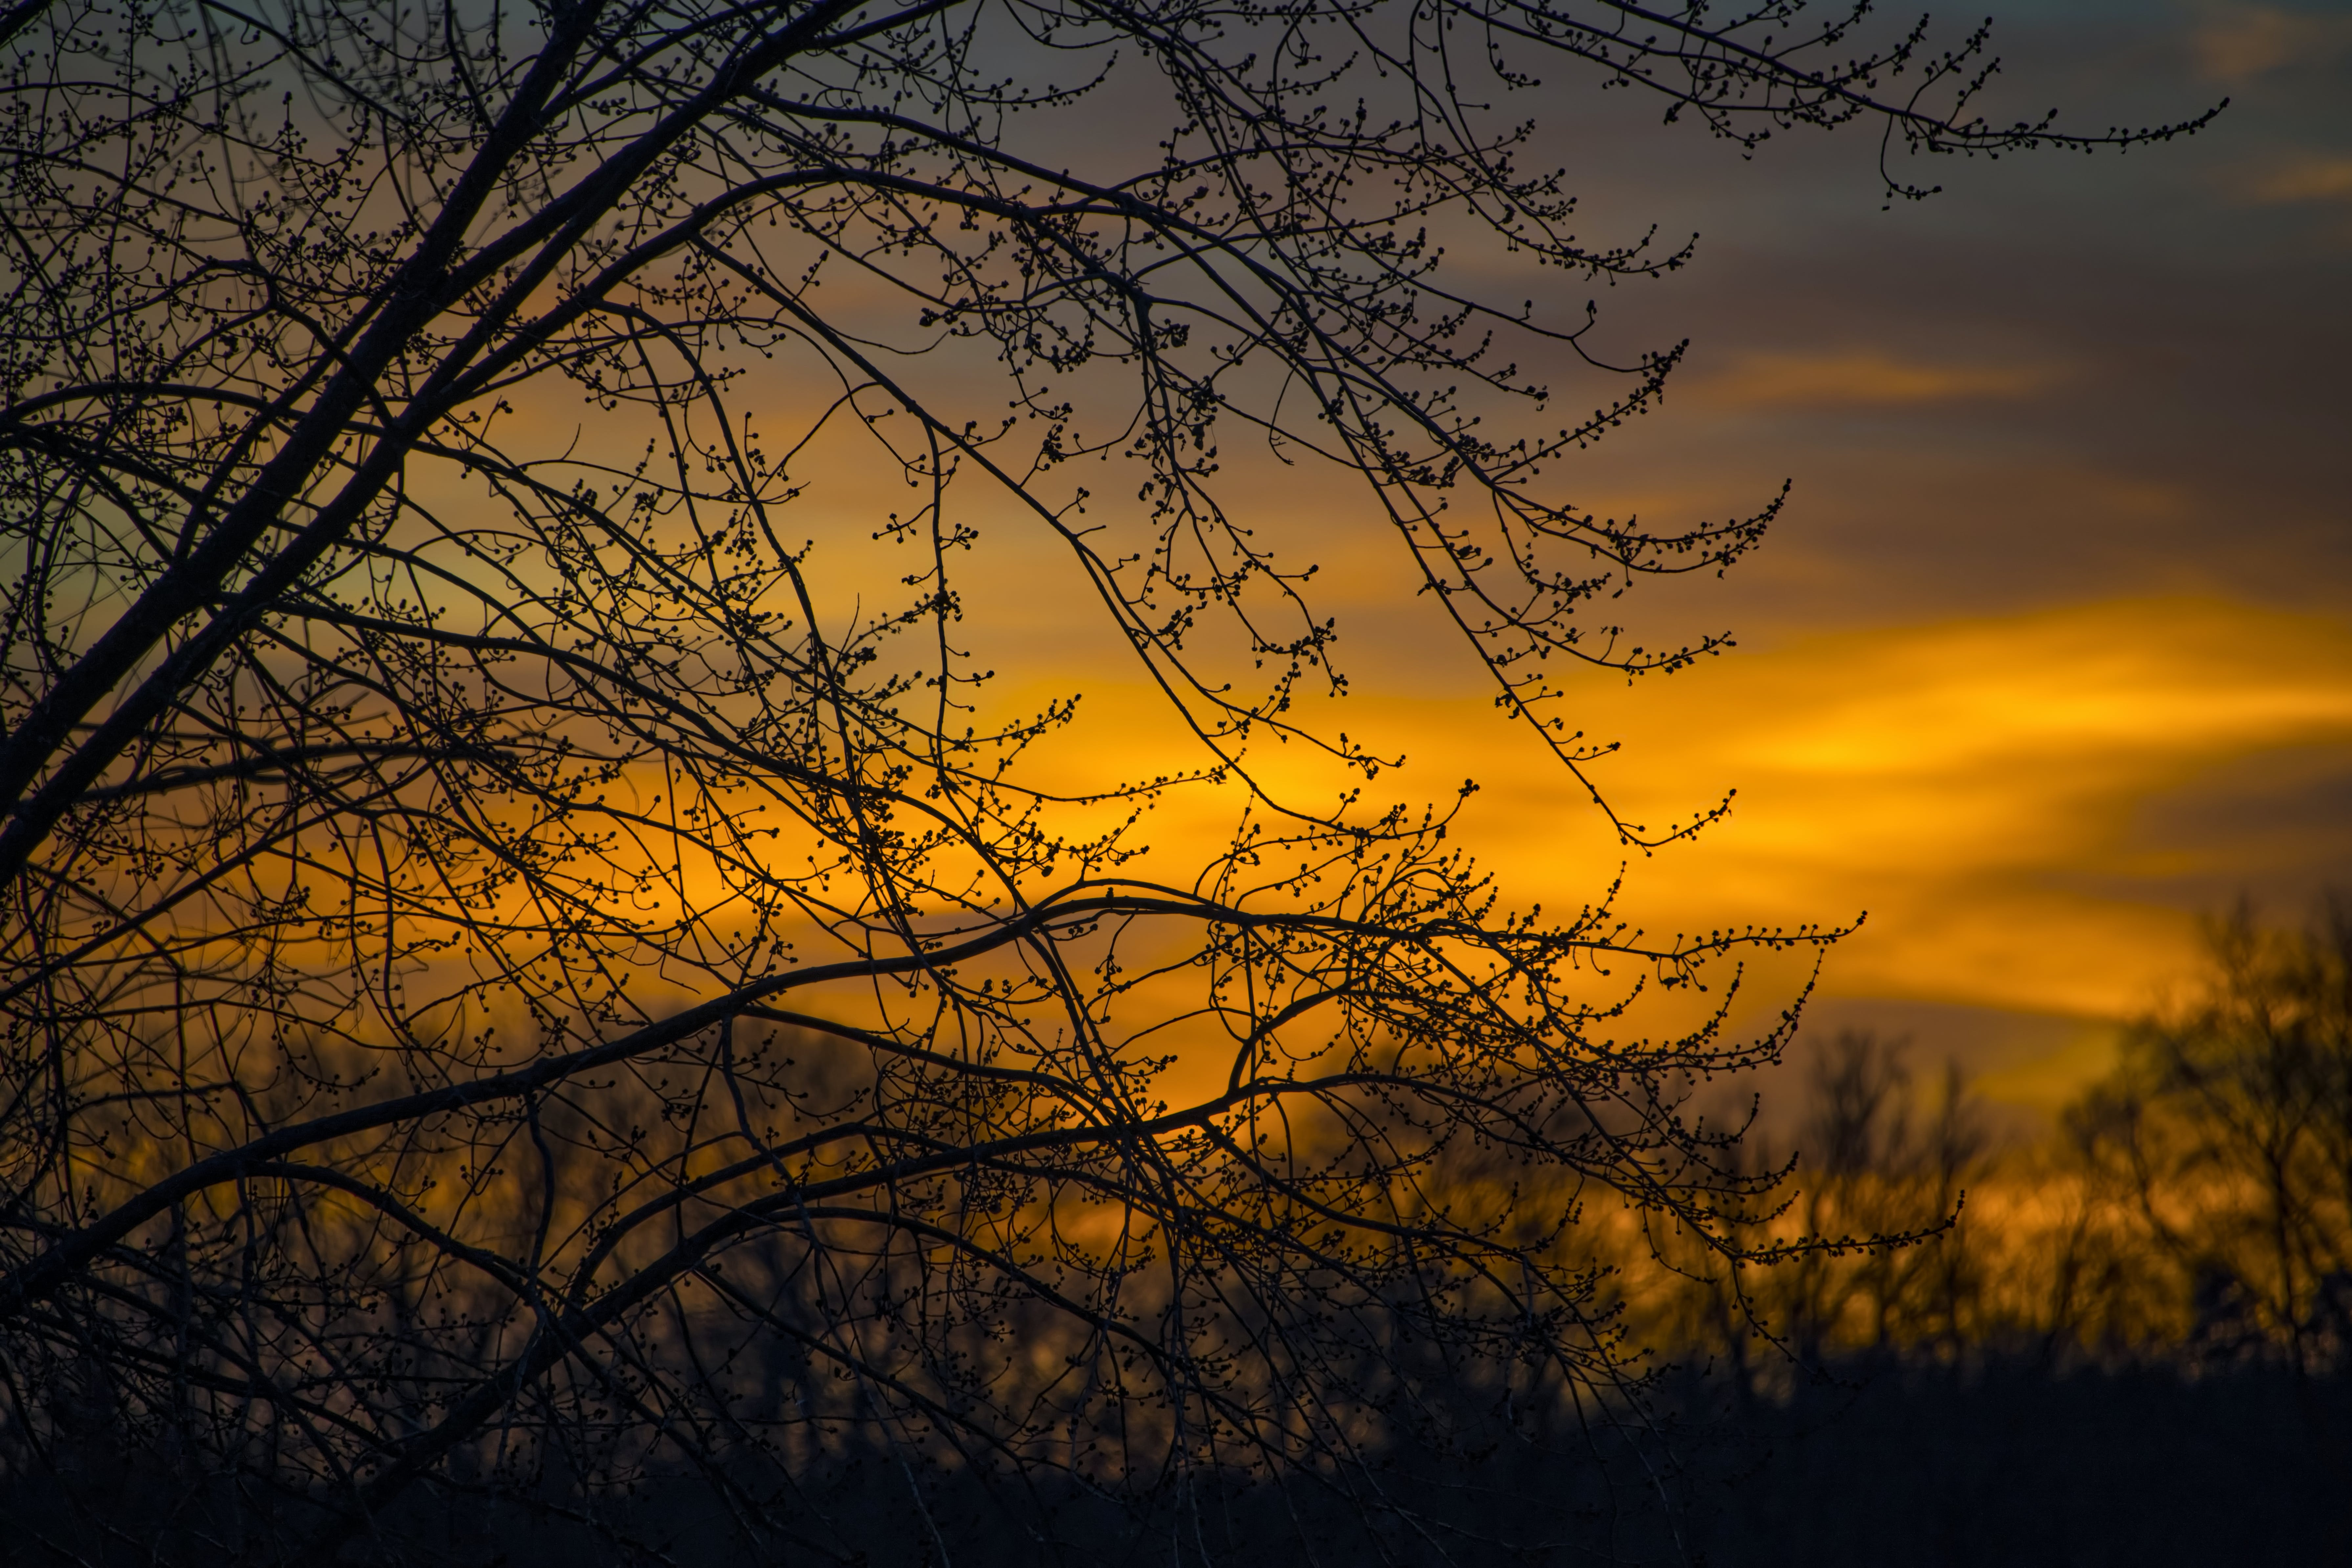 Silhouette Photo of Branches of Tree During Dusk